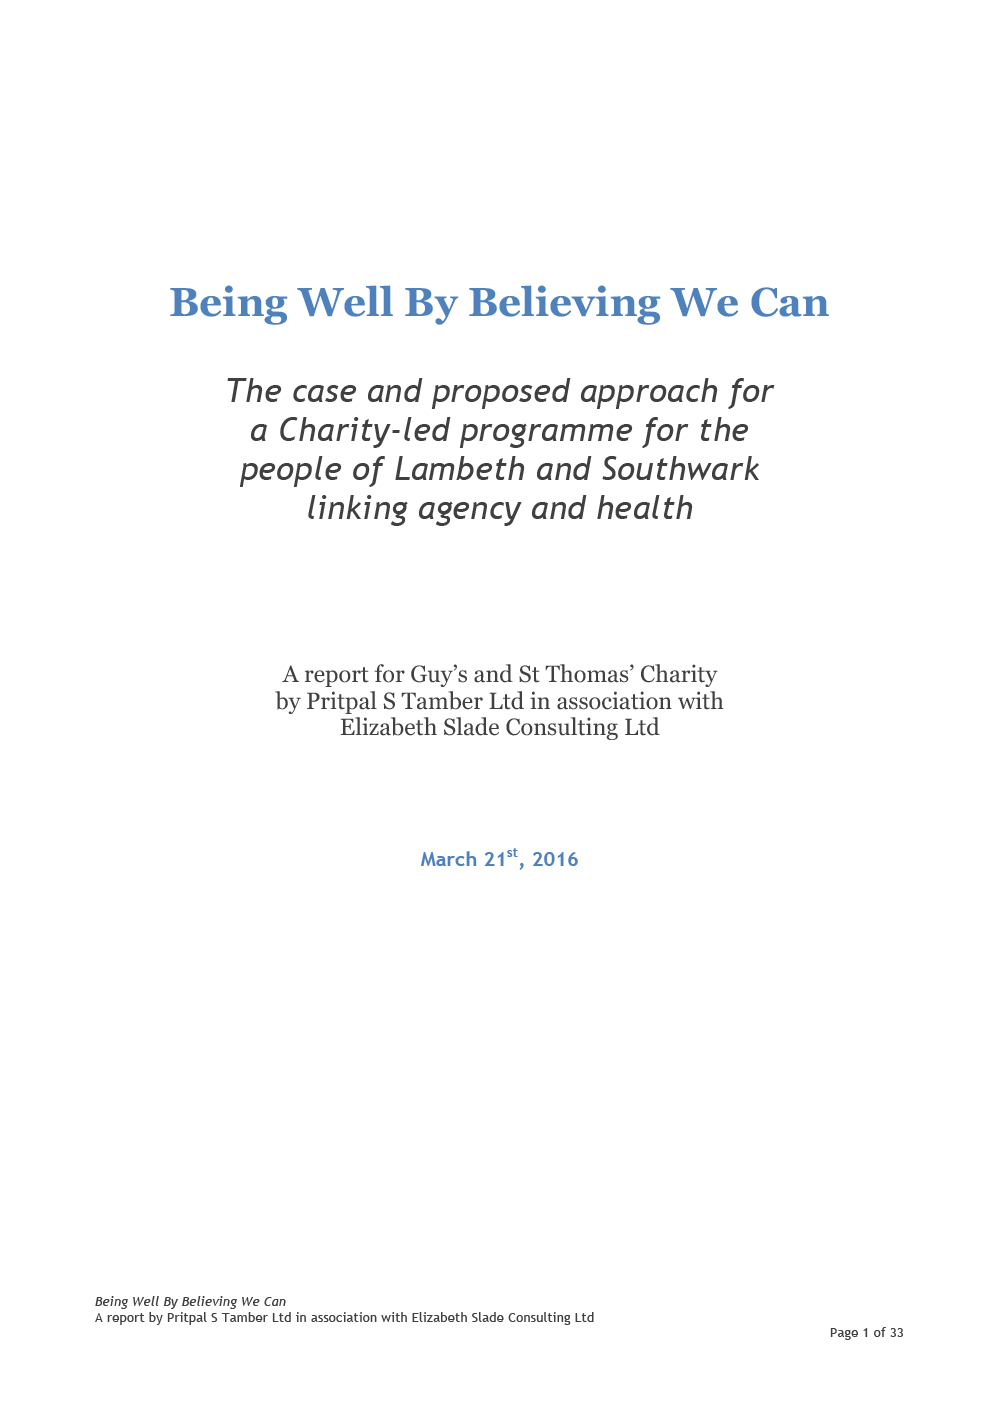 Being-Well-By-Believing-We-Can-Cover